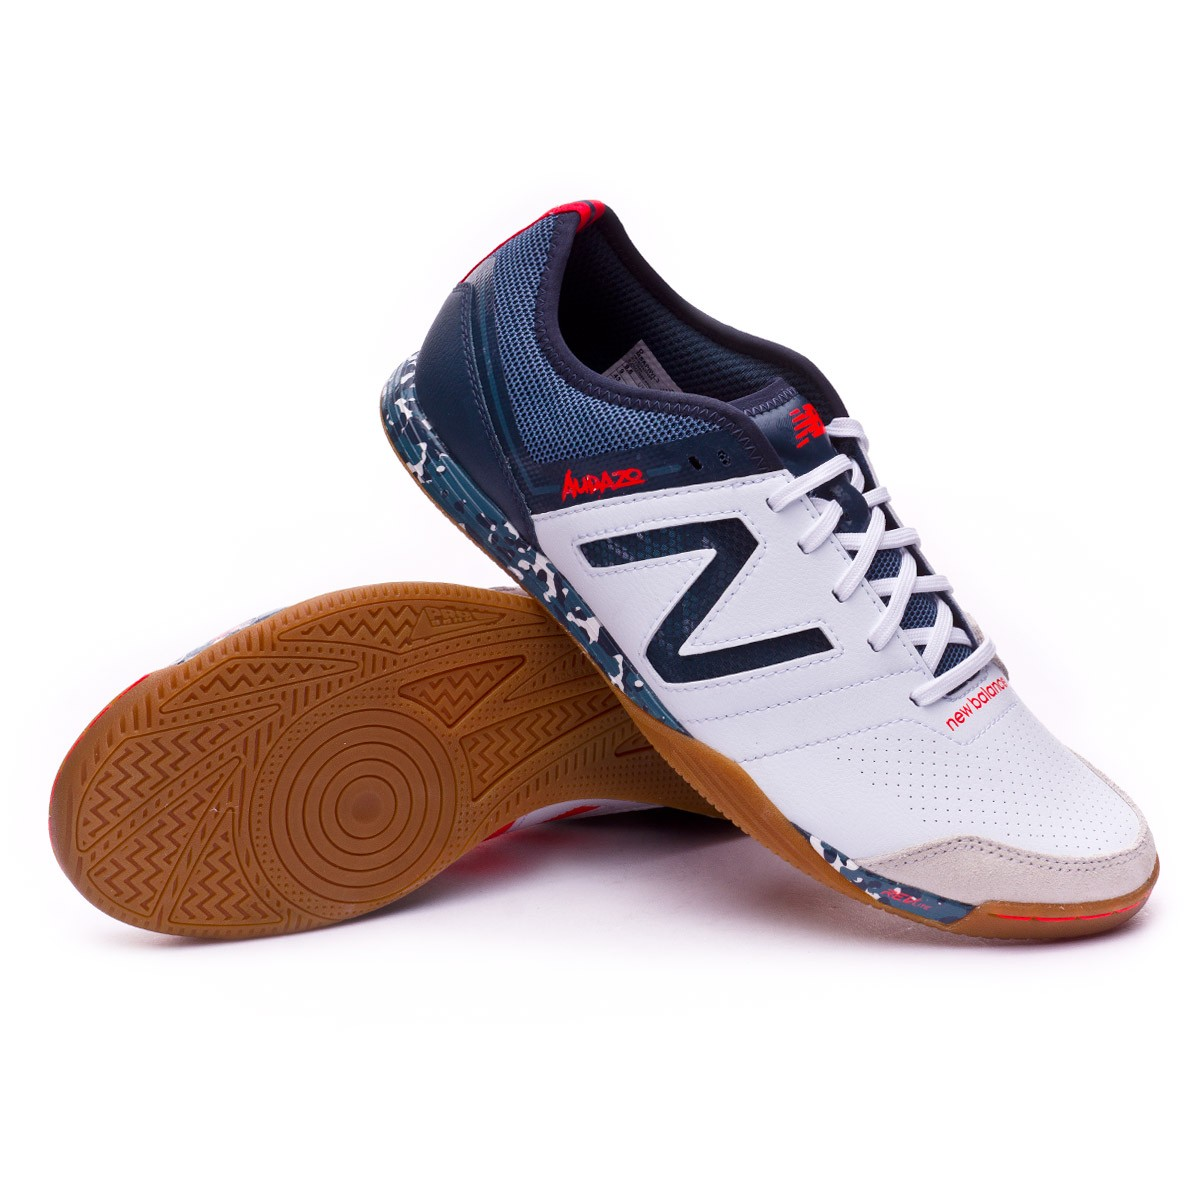 348b1443a Futsal Boot New Balance Audazo Pro 3.0 Futsal White-Grey - Football ...